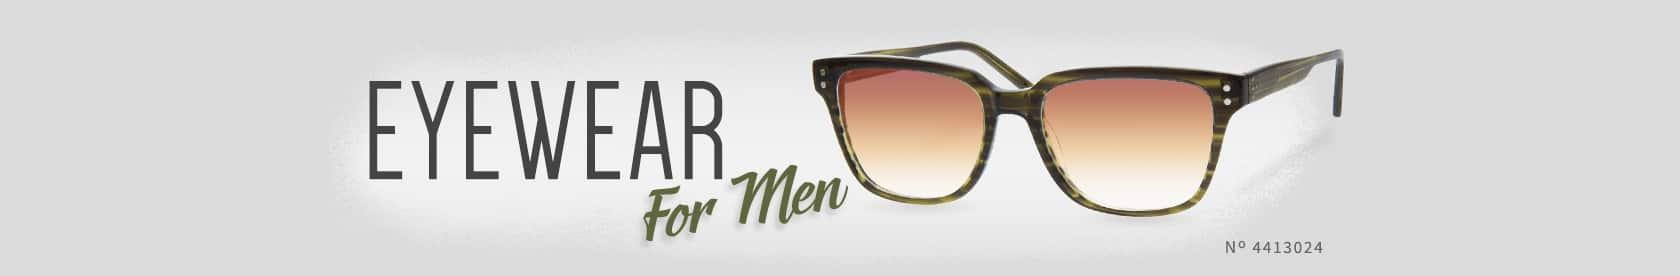 Men's Eyeglasses. Frame #4413024